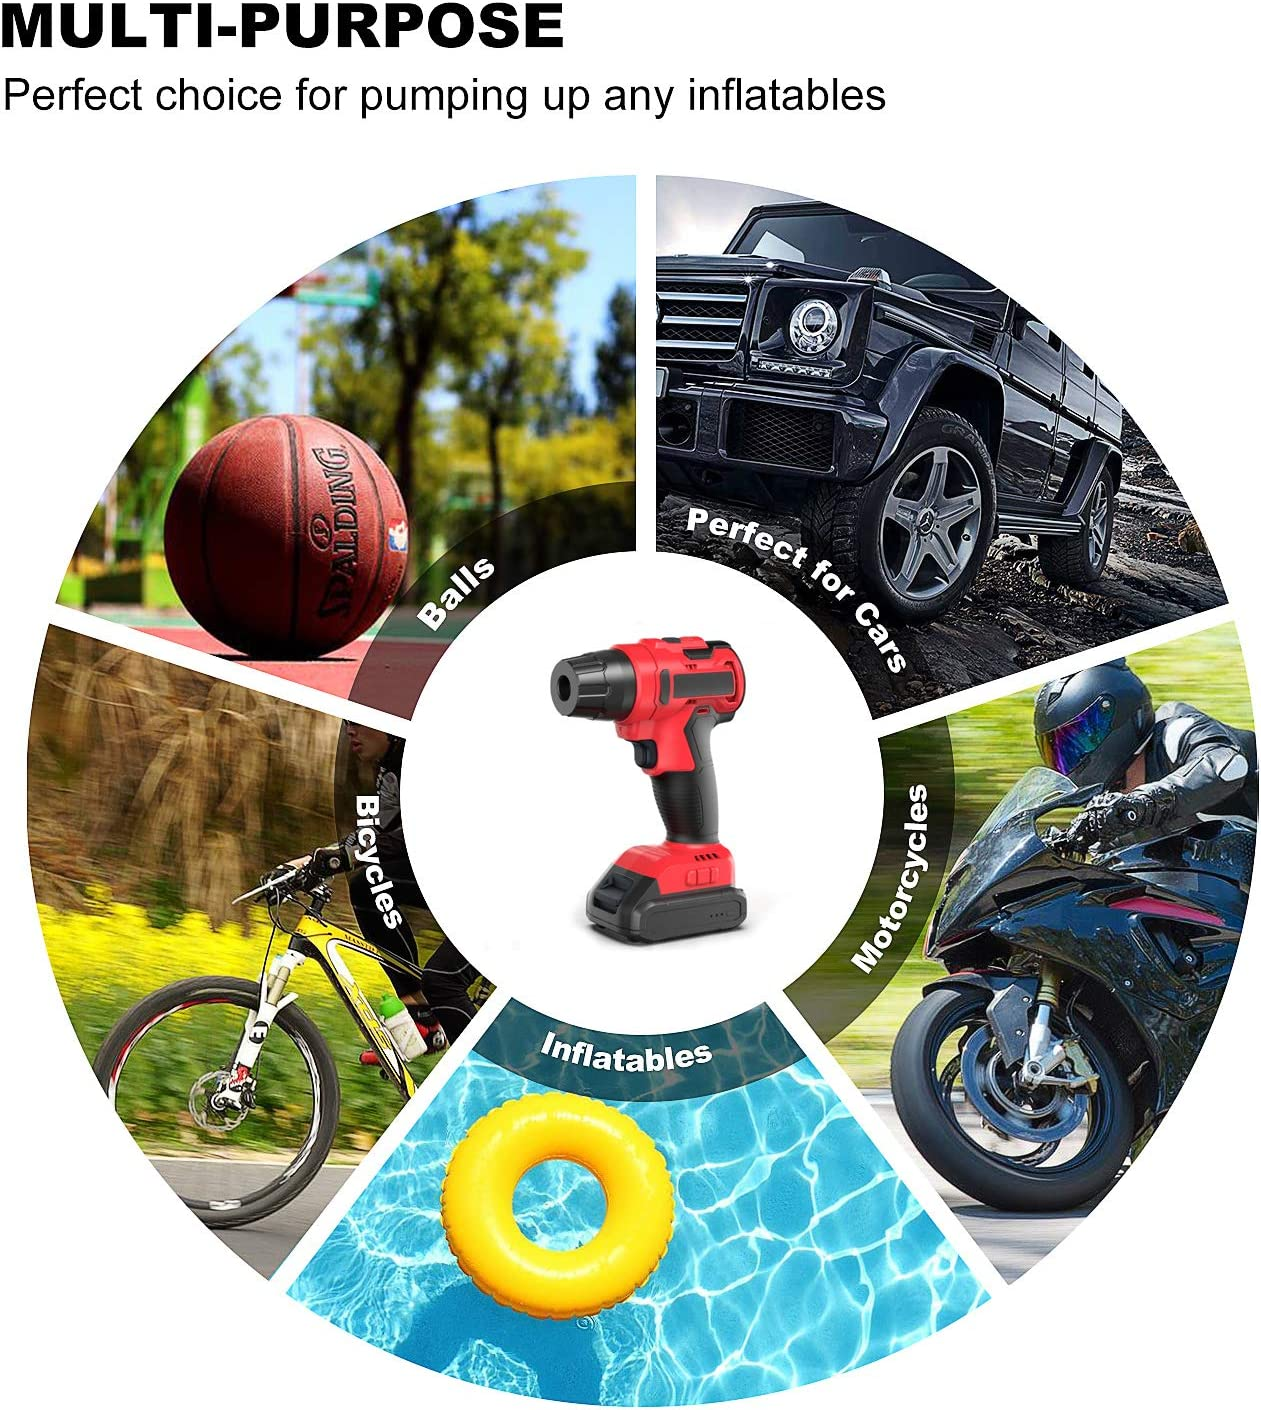 AirXwills Tire Inflator Air Compressor Pump with Digital Gauge 120 Psi Portable Cordless Pump with Rechargeable Battery Auto-Stop for Inflatables